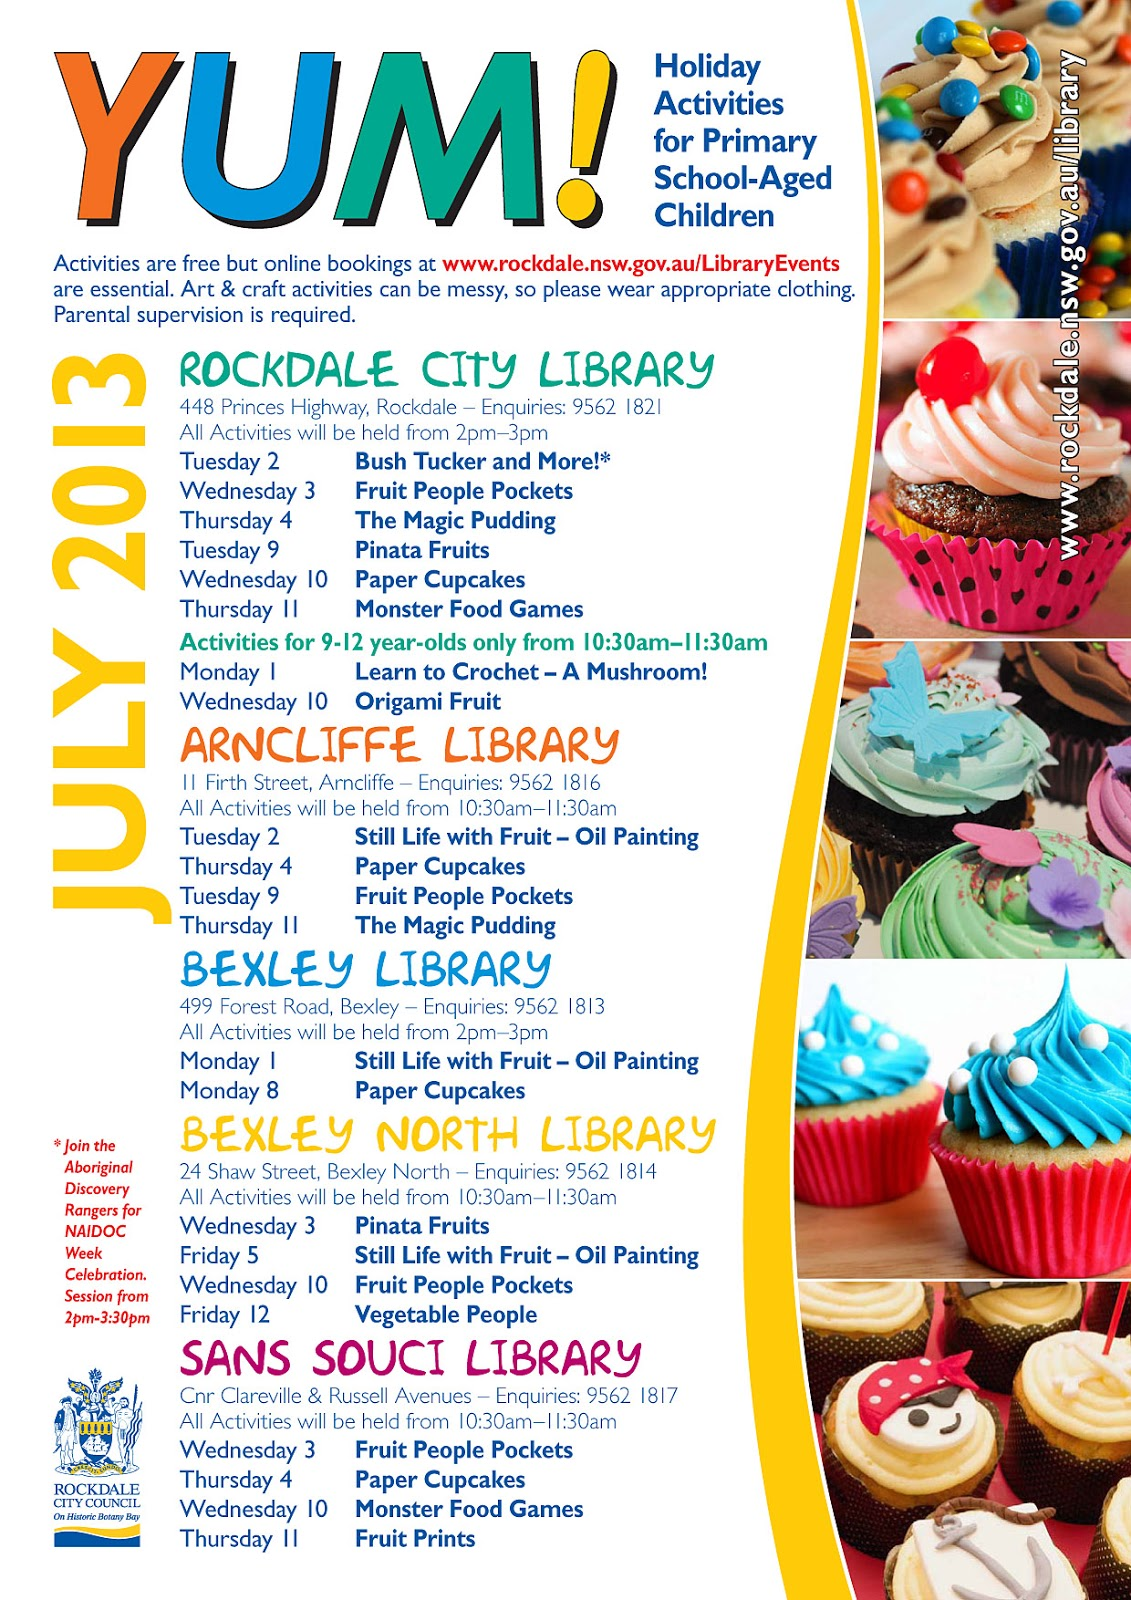 Rockdale Library News July School Holiday Program For Primary School Aged Children